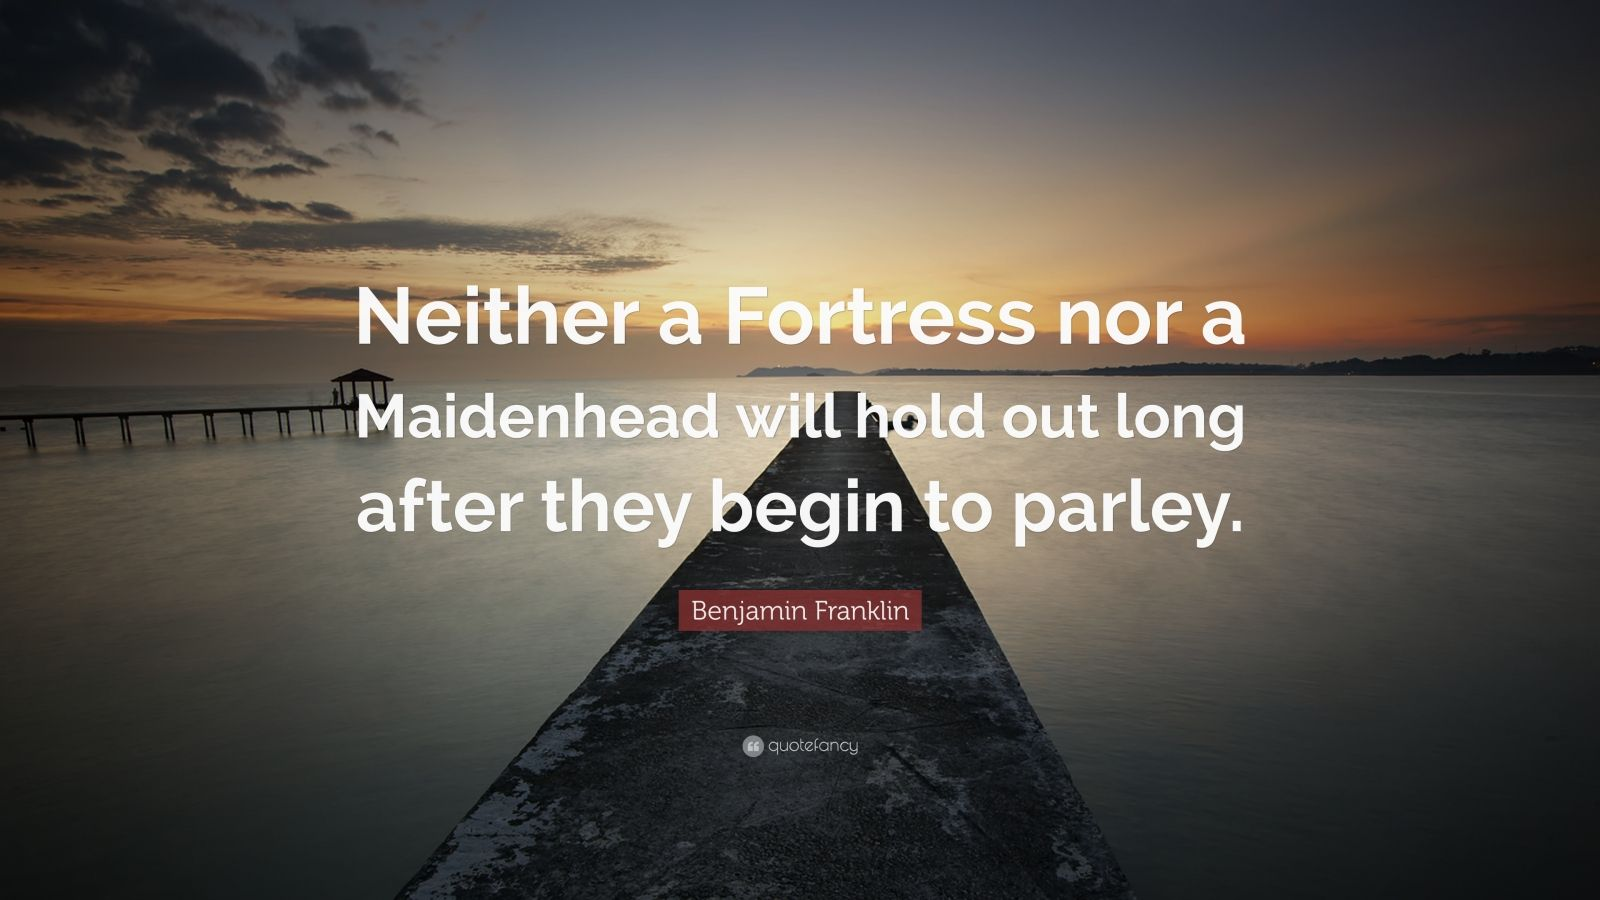 """Benjamin Franklin Quote: """"Neither a Fortress nor a Maidenhead will hold out long after they begin to parley."""""""